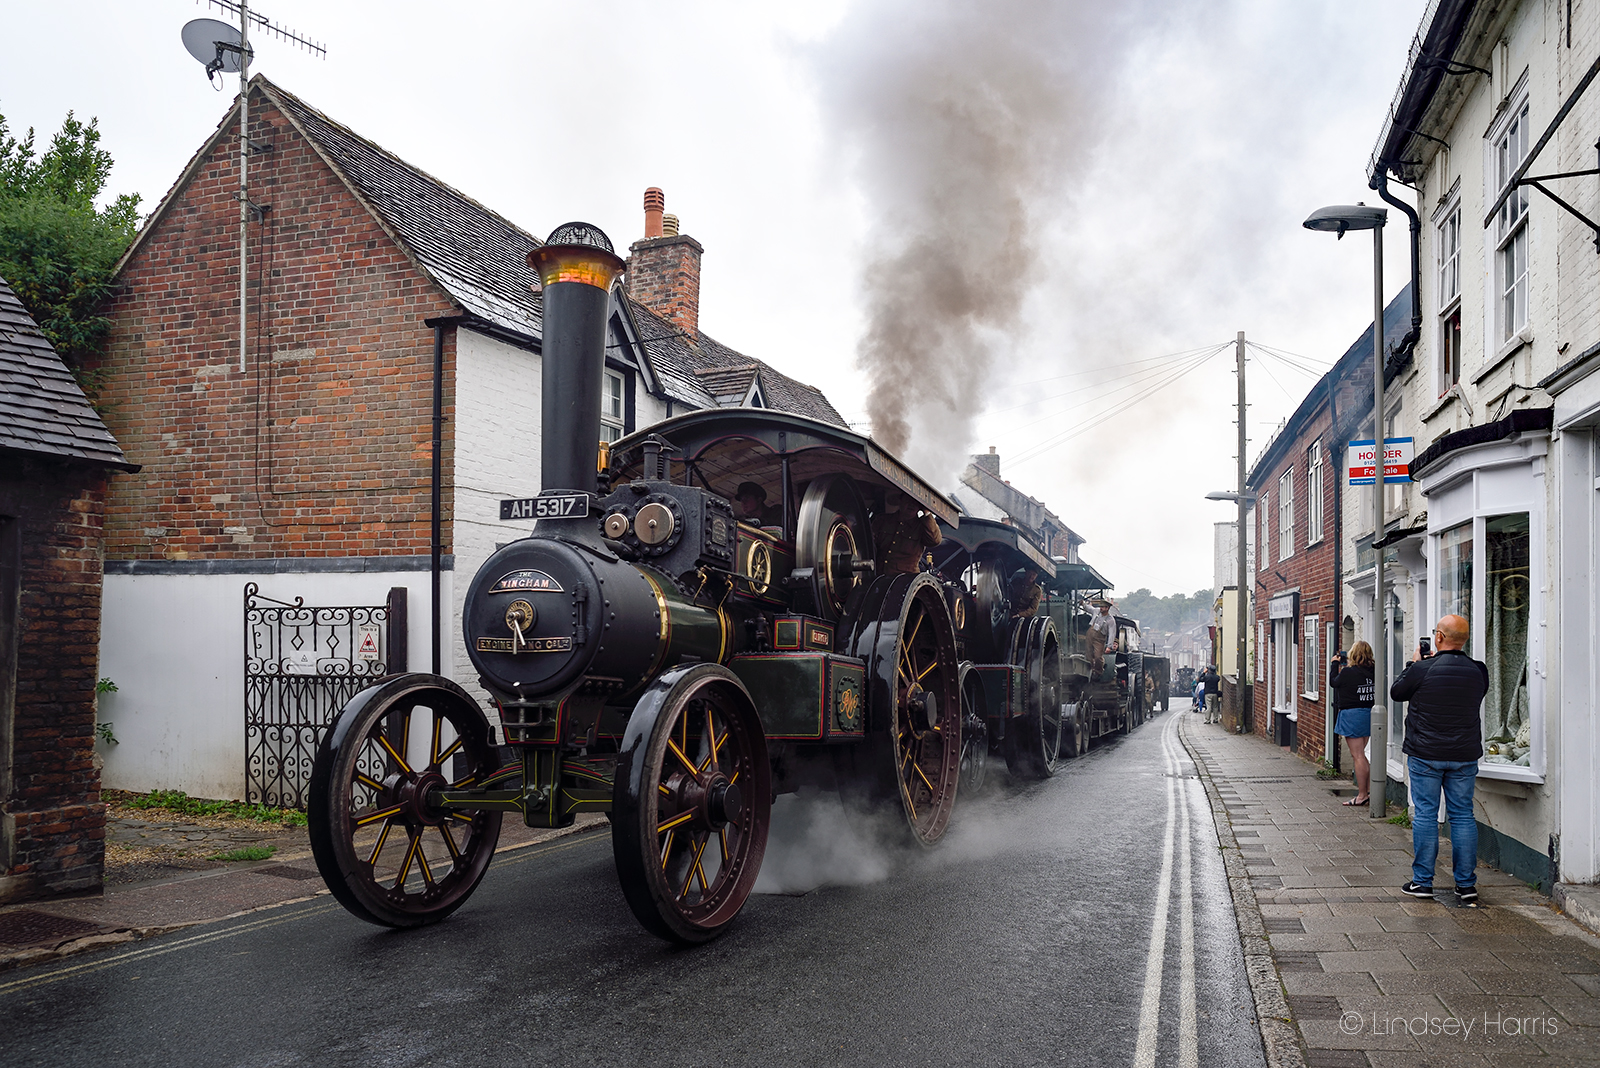 Photo of traction engines and other vehicles from the WW1 Homecoming Parade at Blandford Forum, Dorset.